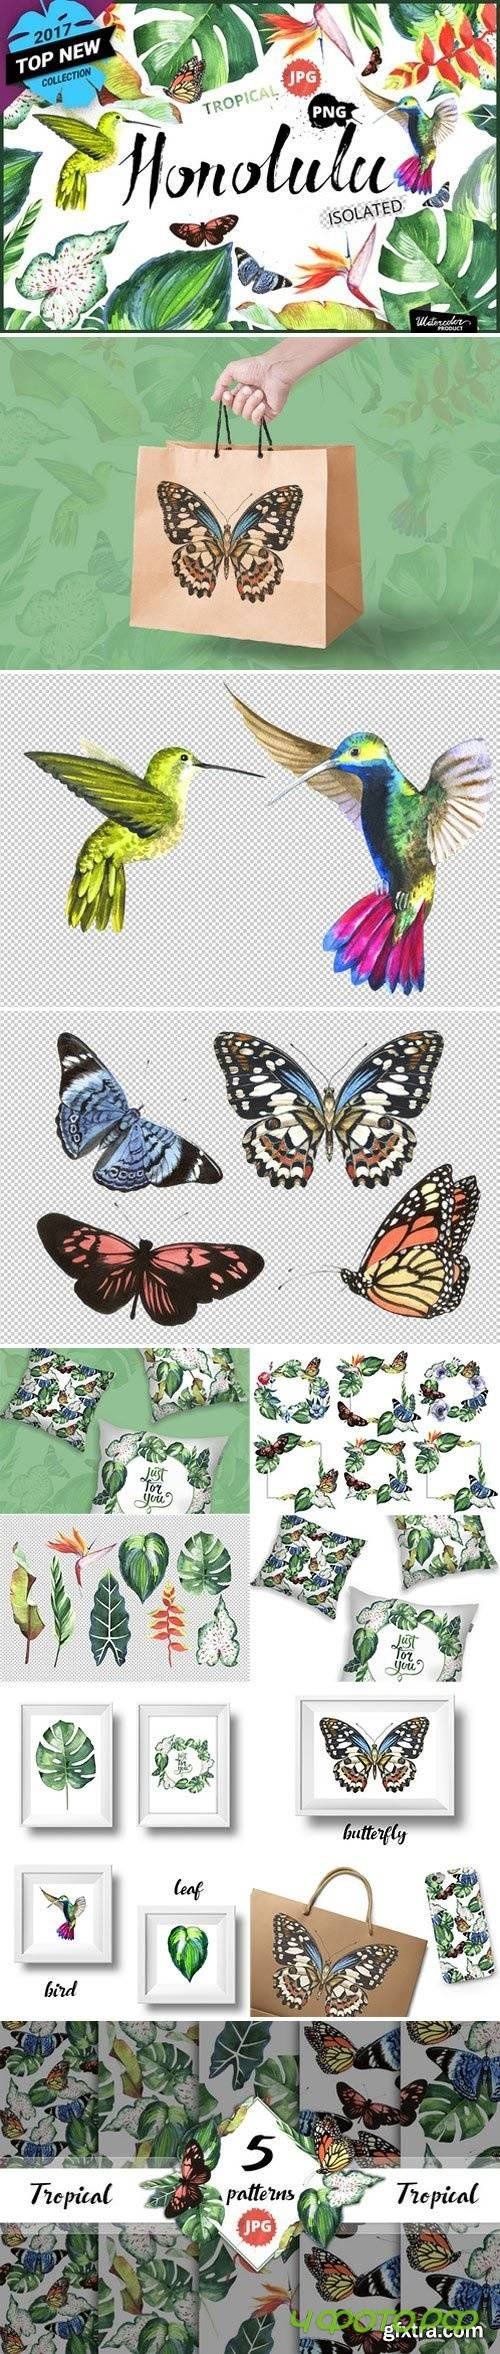 Tropical clipart PNG watercolor - 1151961